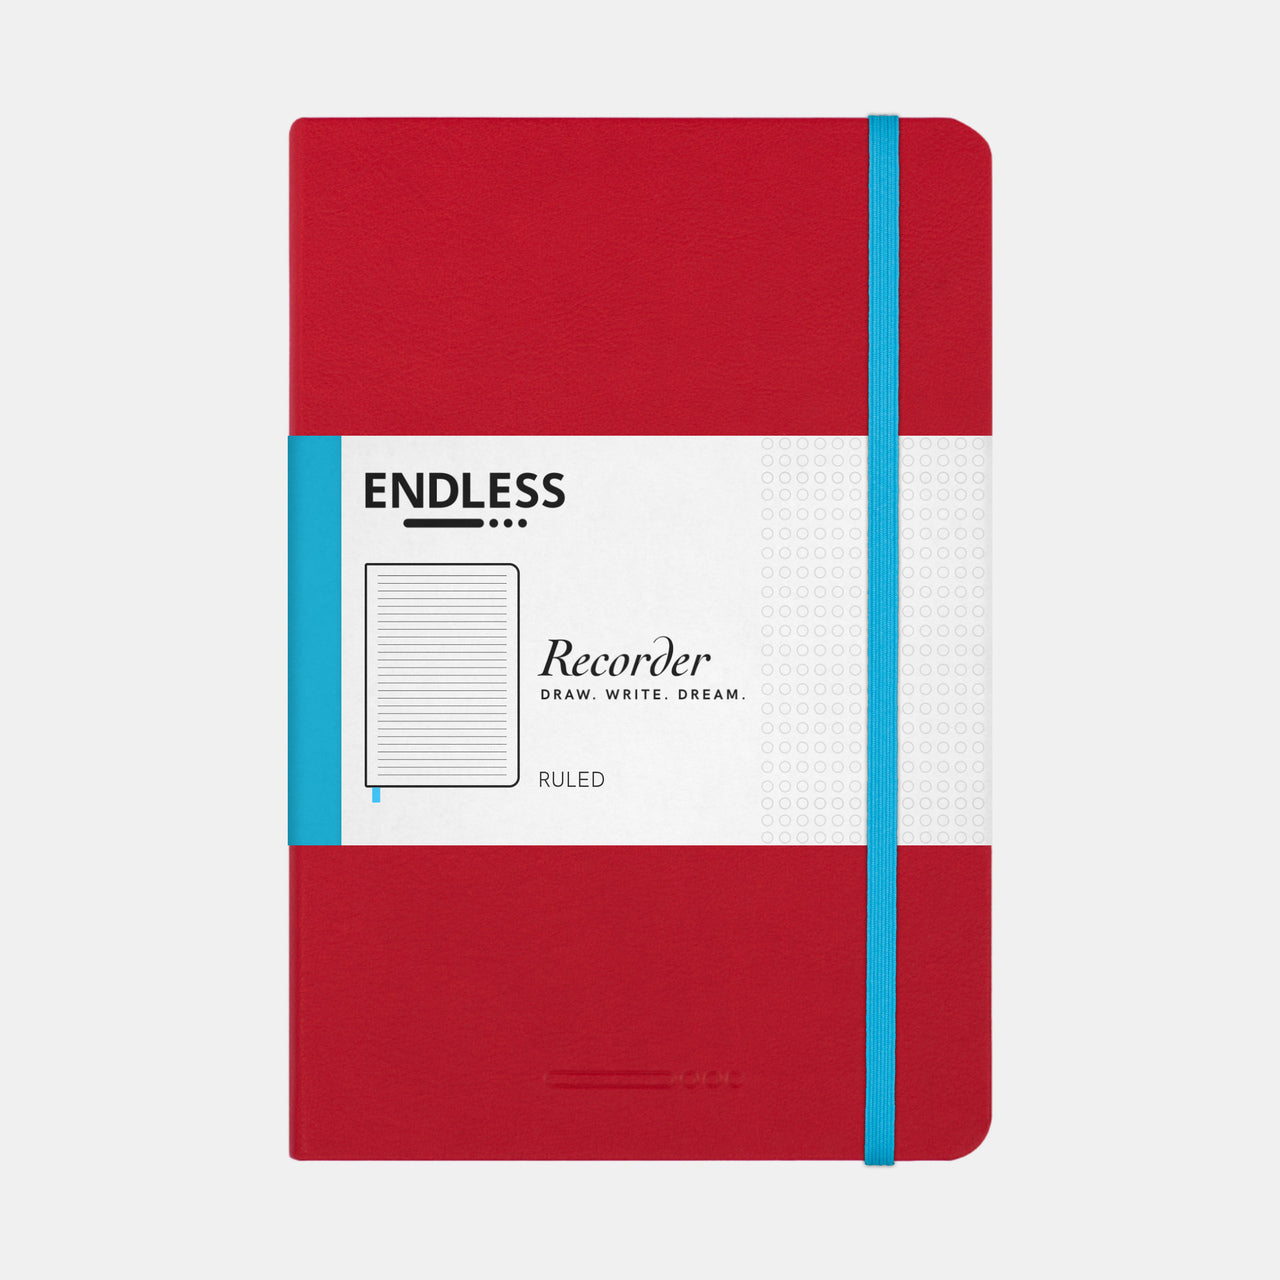 Endless Recorder A5 Journal- Red Cover